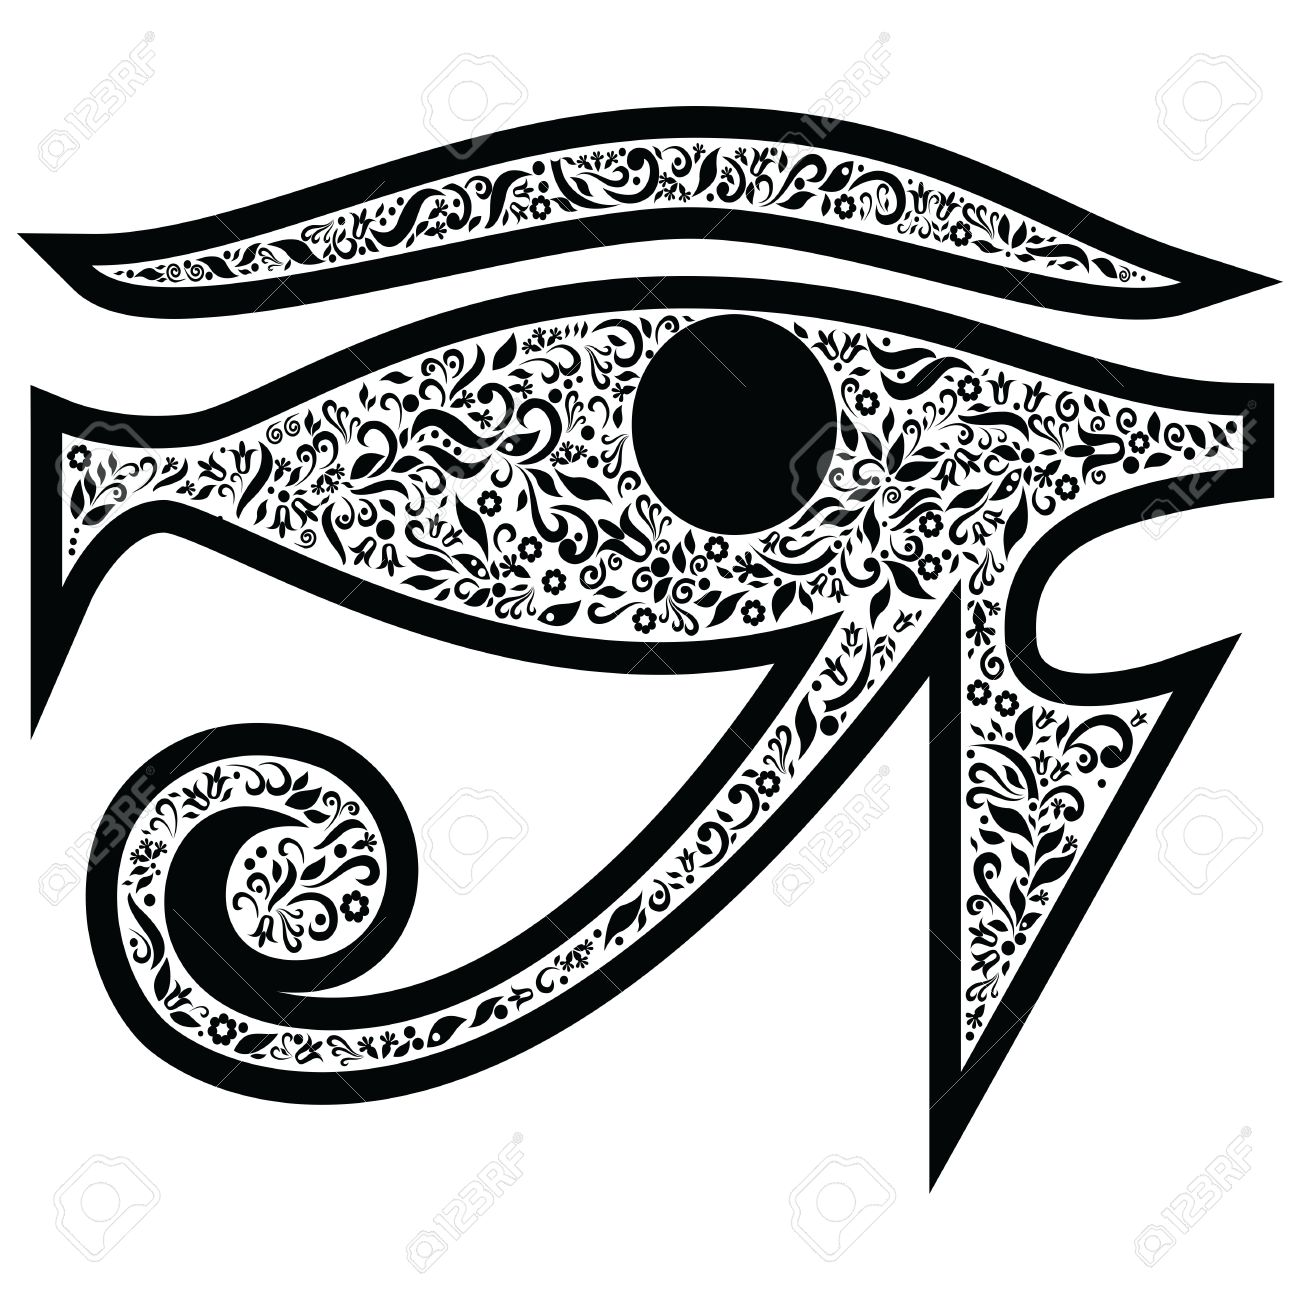 Evil eye with floral elements in black and white tattoo style evil eye with floral elements in black and white tattoo style middle eastern religious amulet biocorpaavc